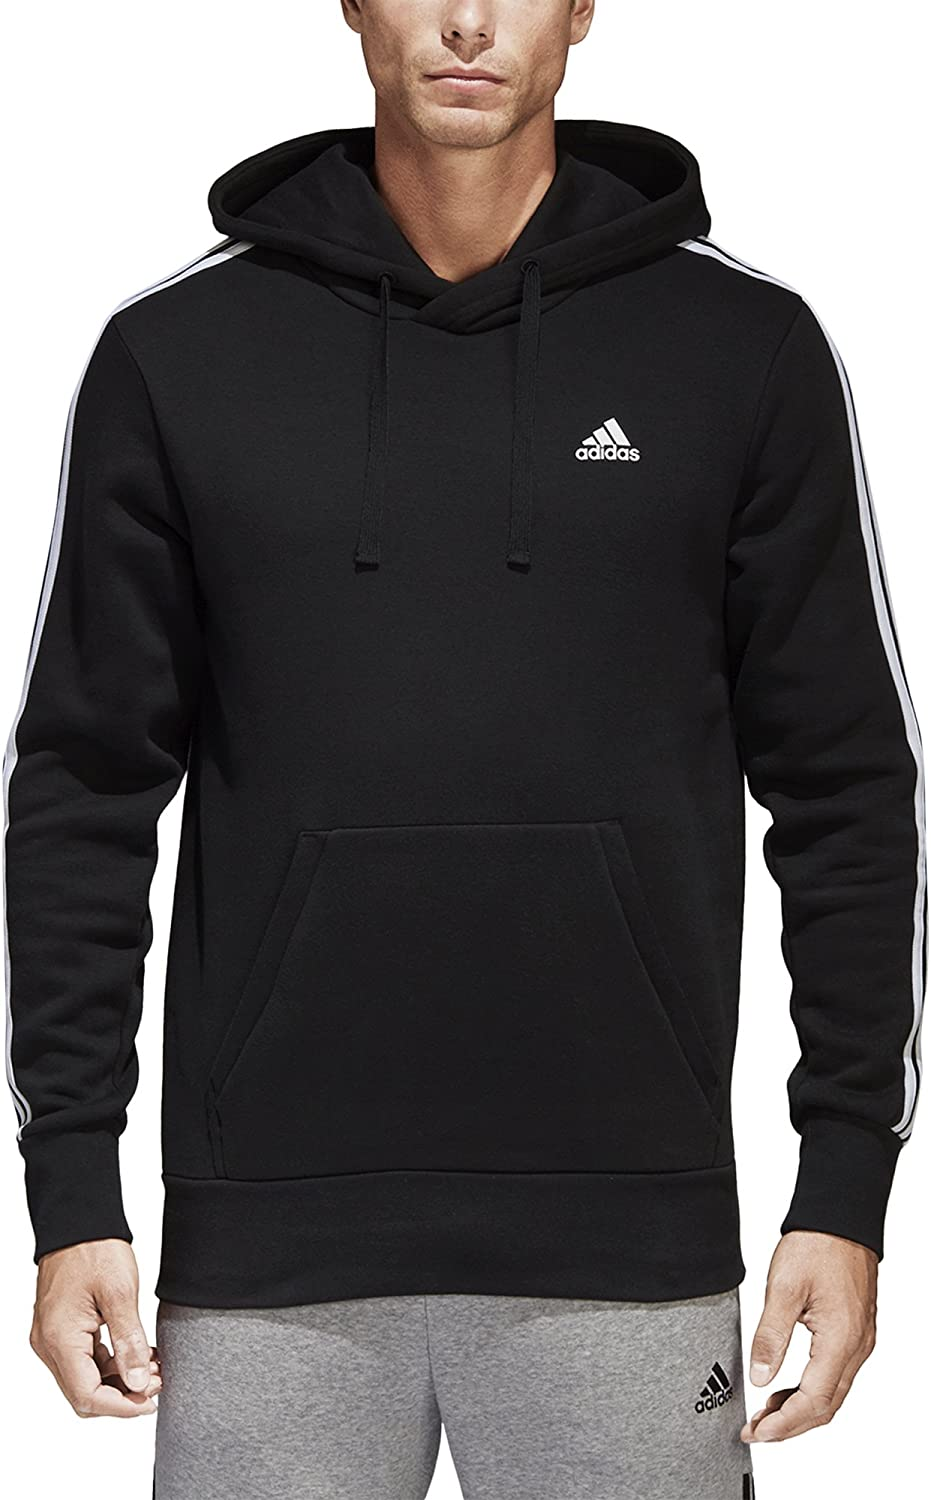 adidas Men's Essentials Free Purchase shipping New Hoodie Pullover 3-Stripe